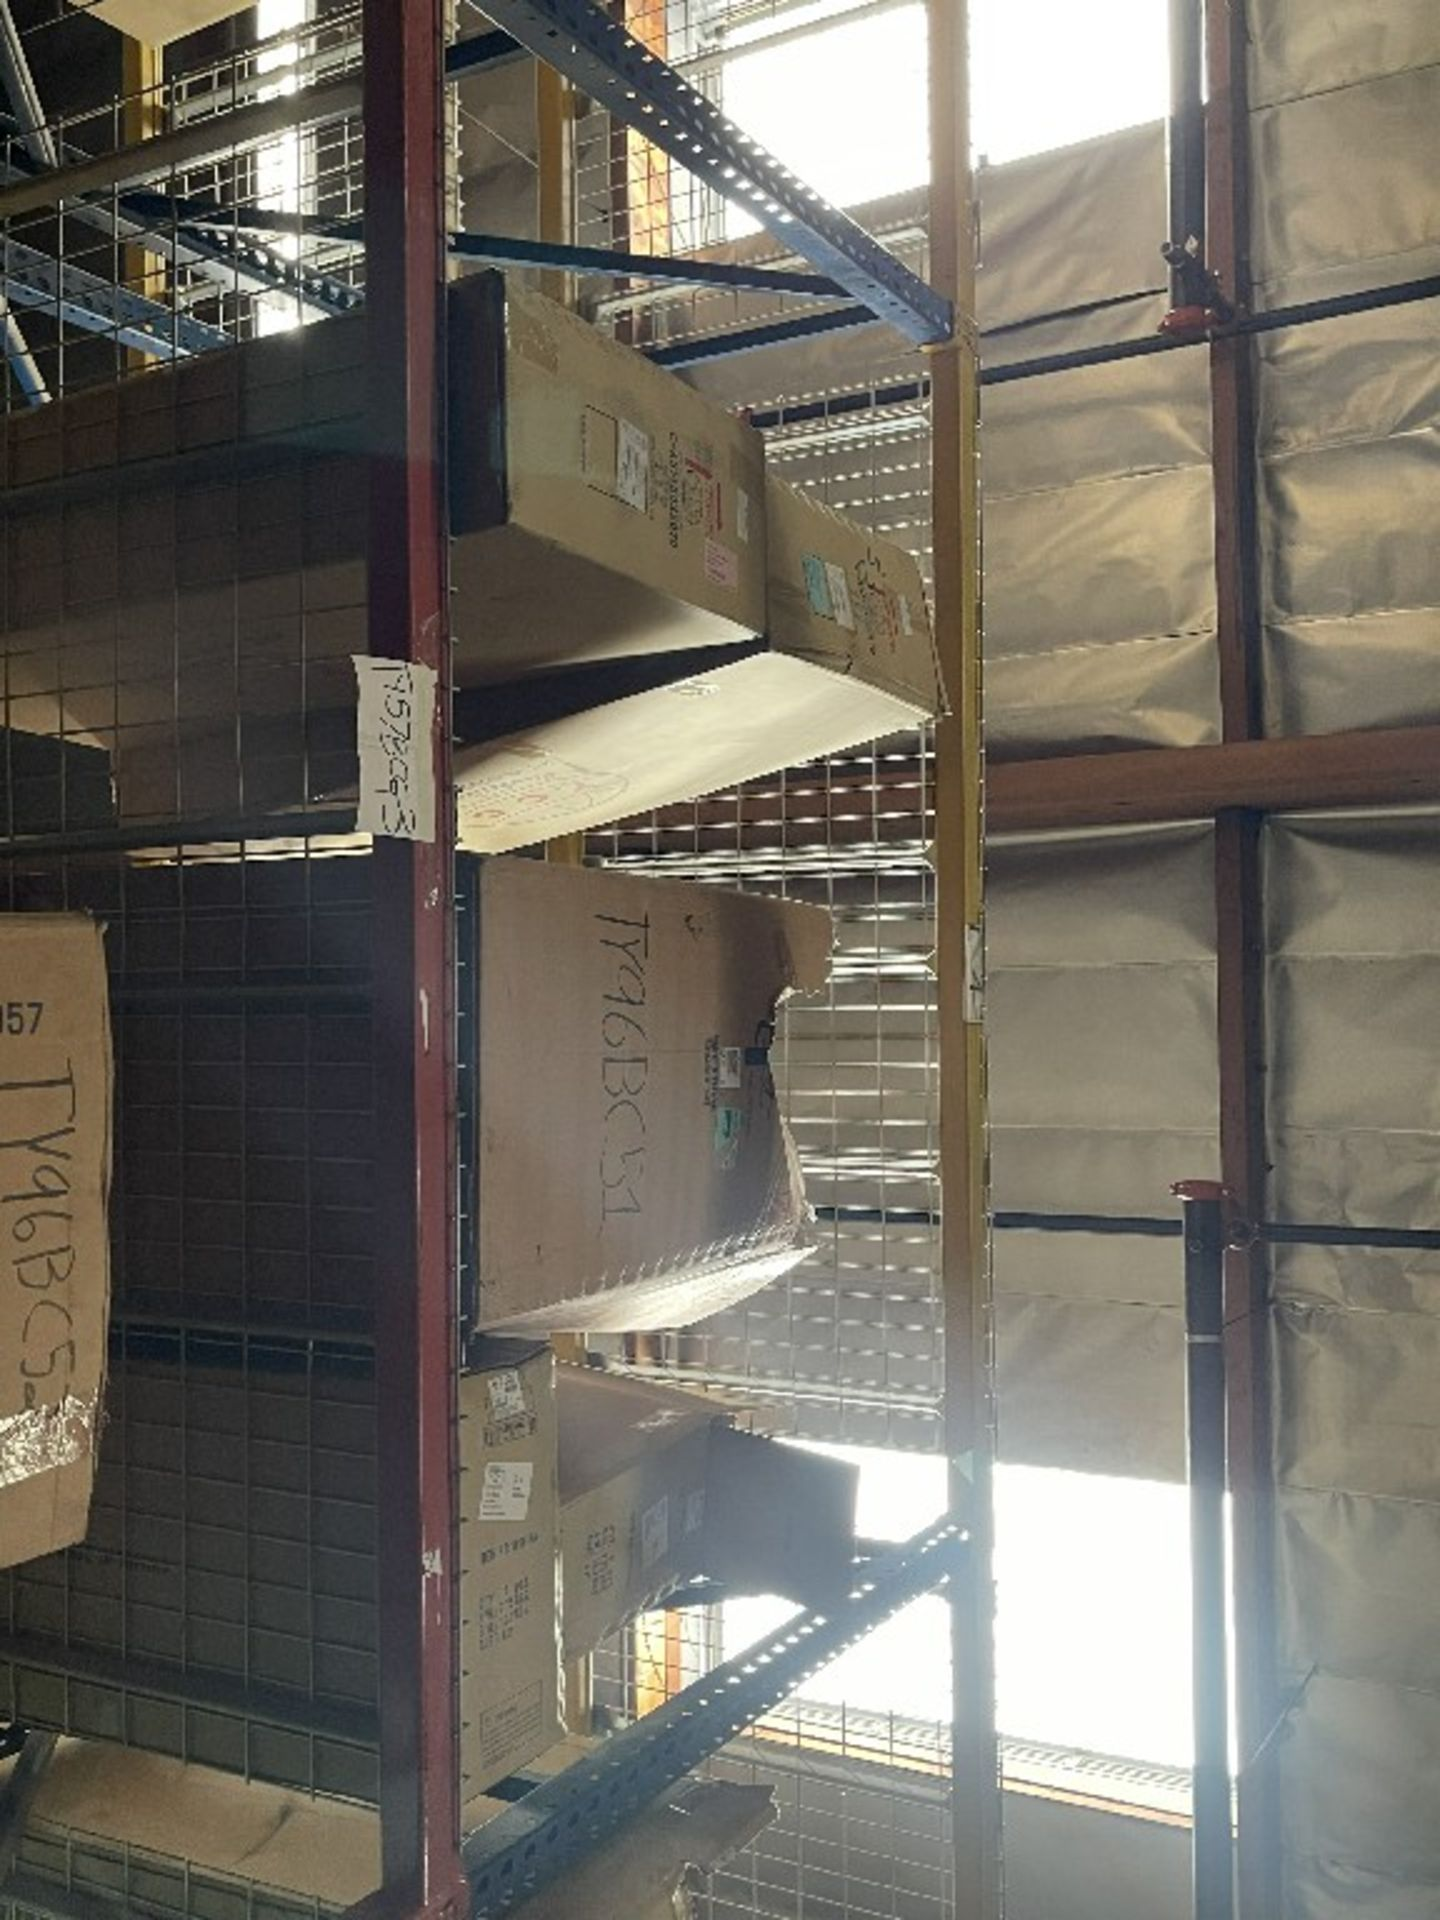 (TOP 2 SECTIONS) ASST GRILLES TOYOTA - Image 2 of 2